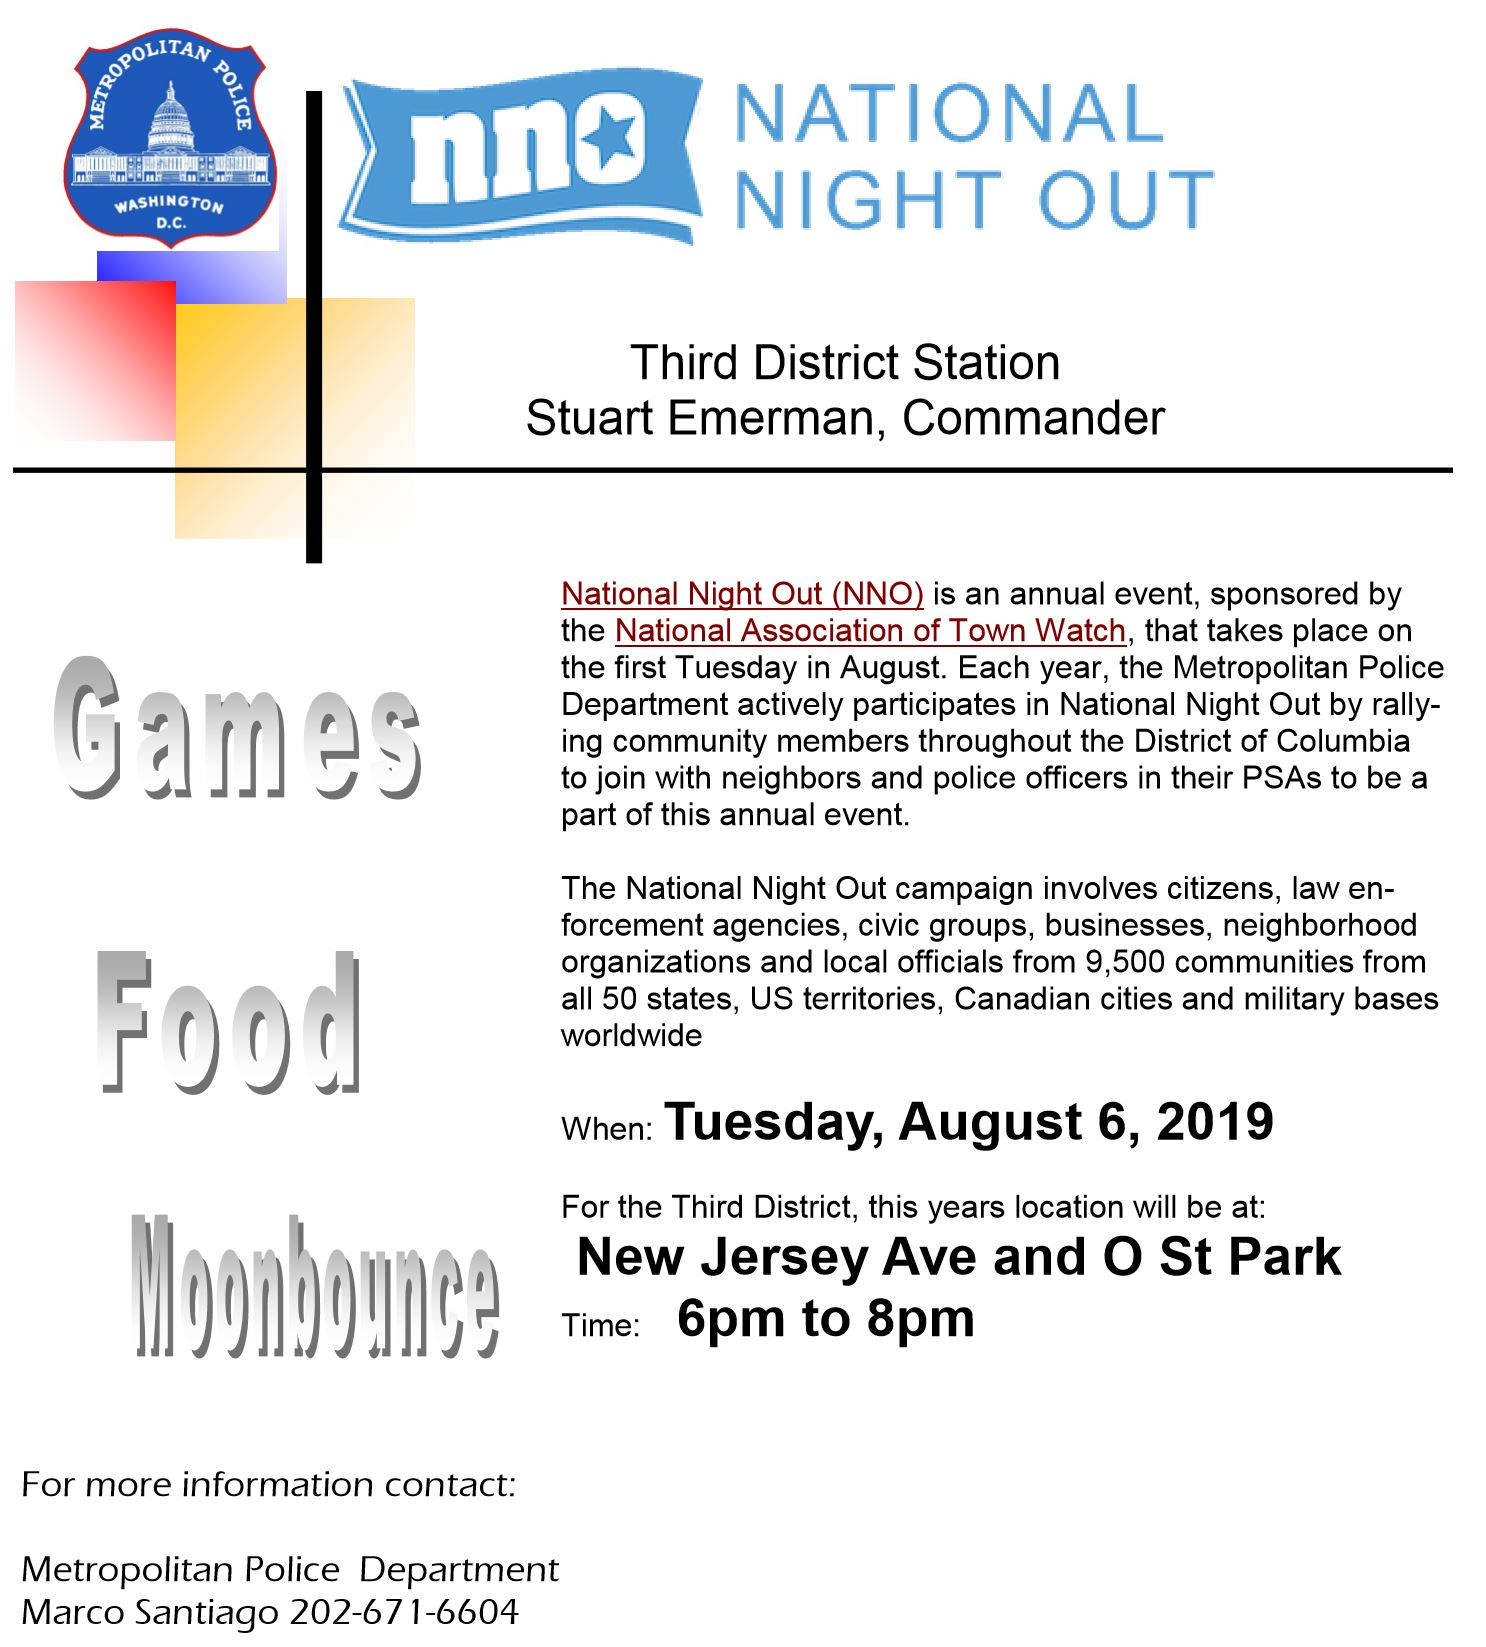 Third District's National Night Out (NNO) to be held at New